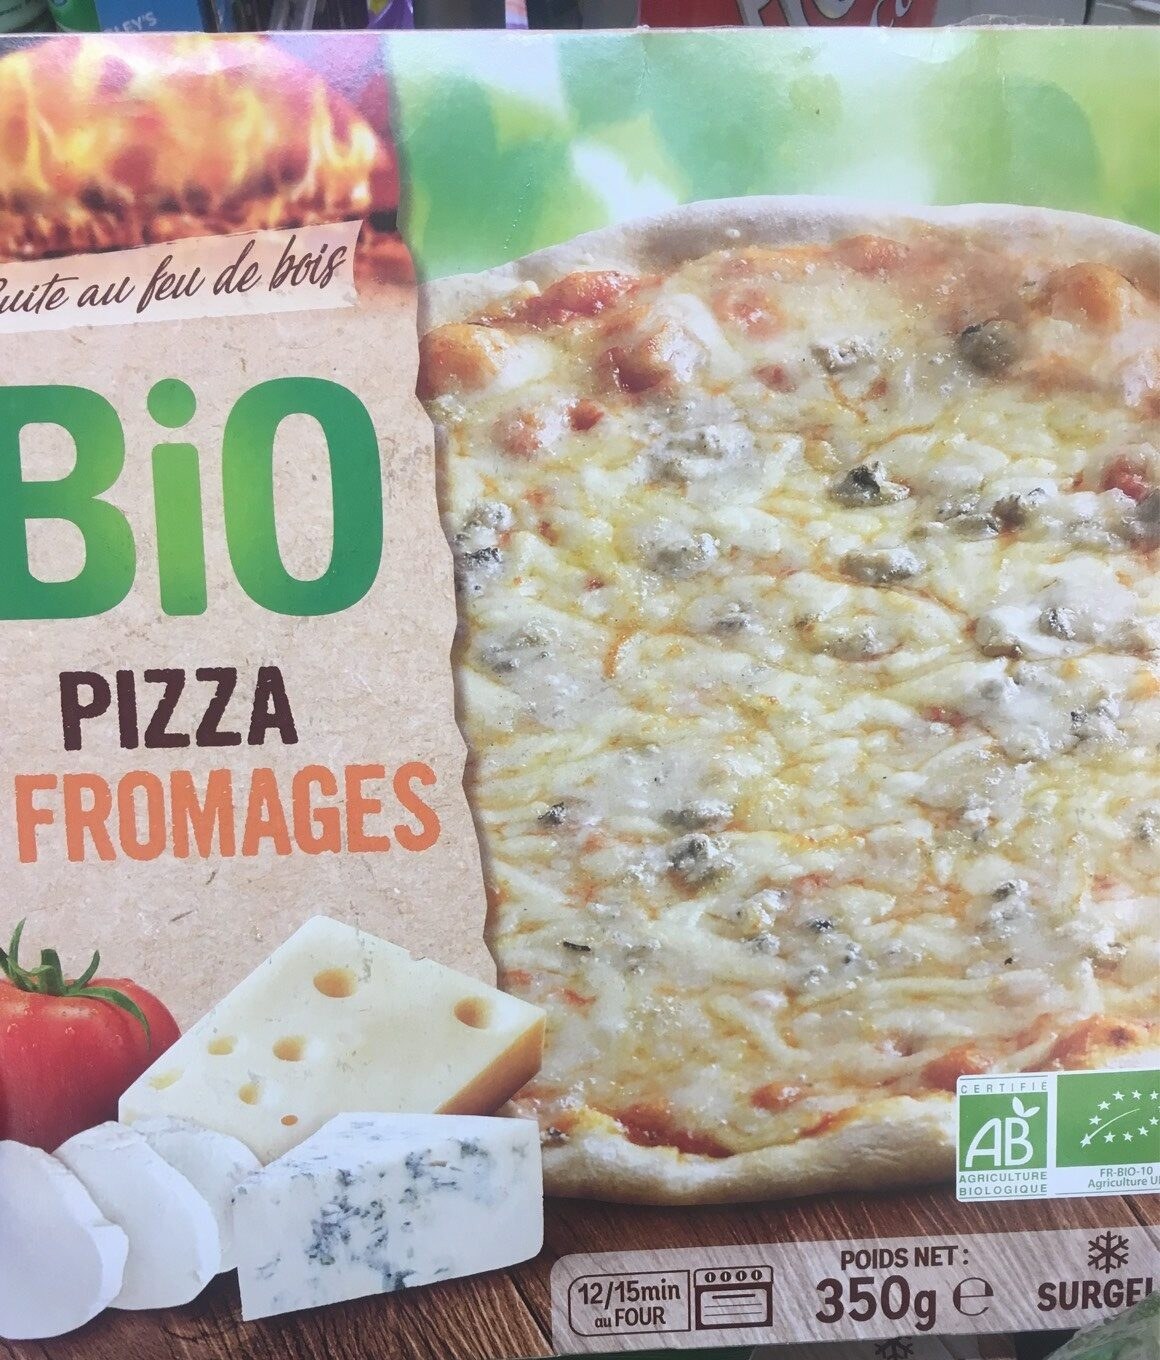 Pizza bio 3 fromages - Produkt